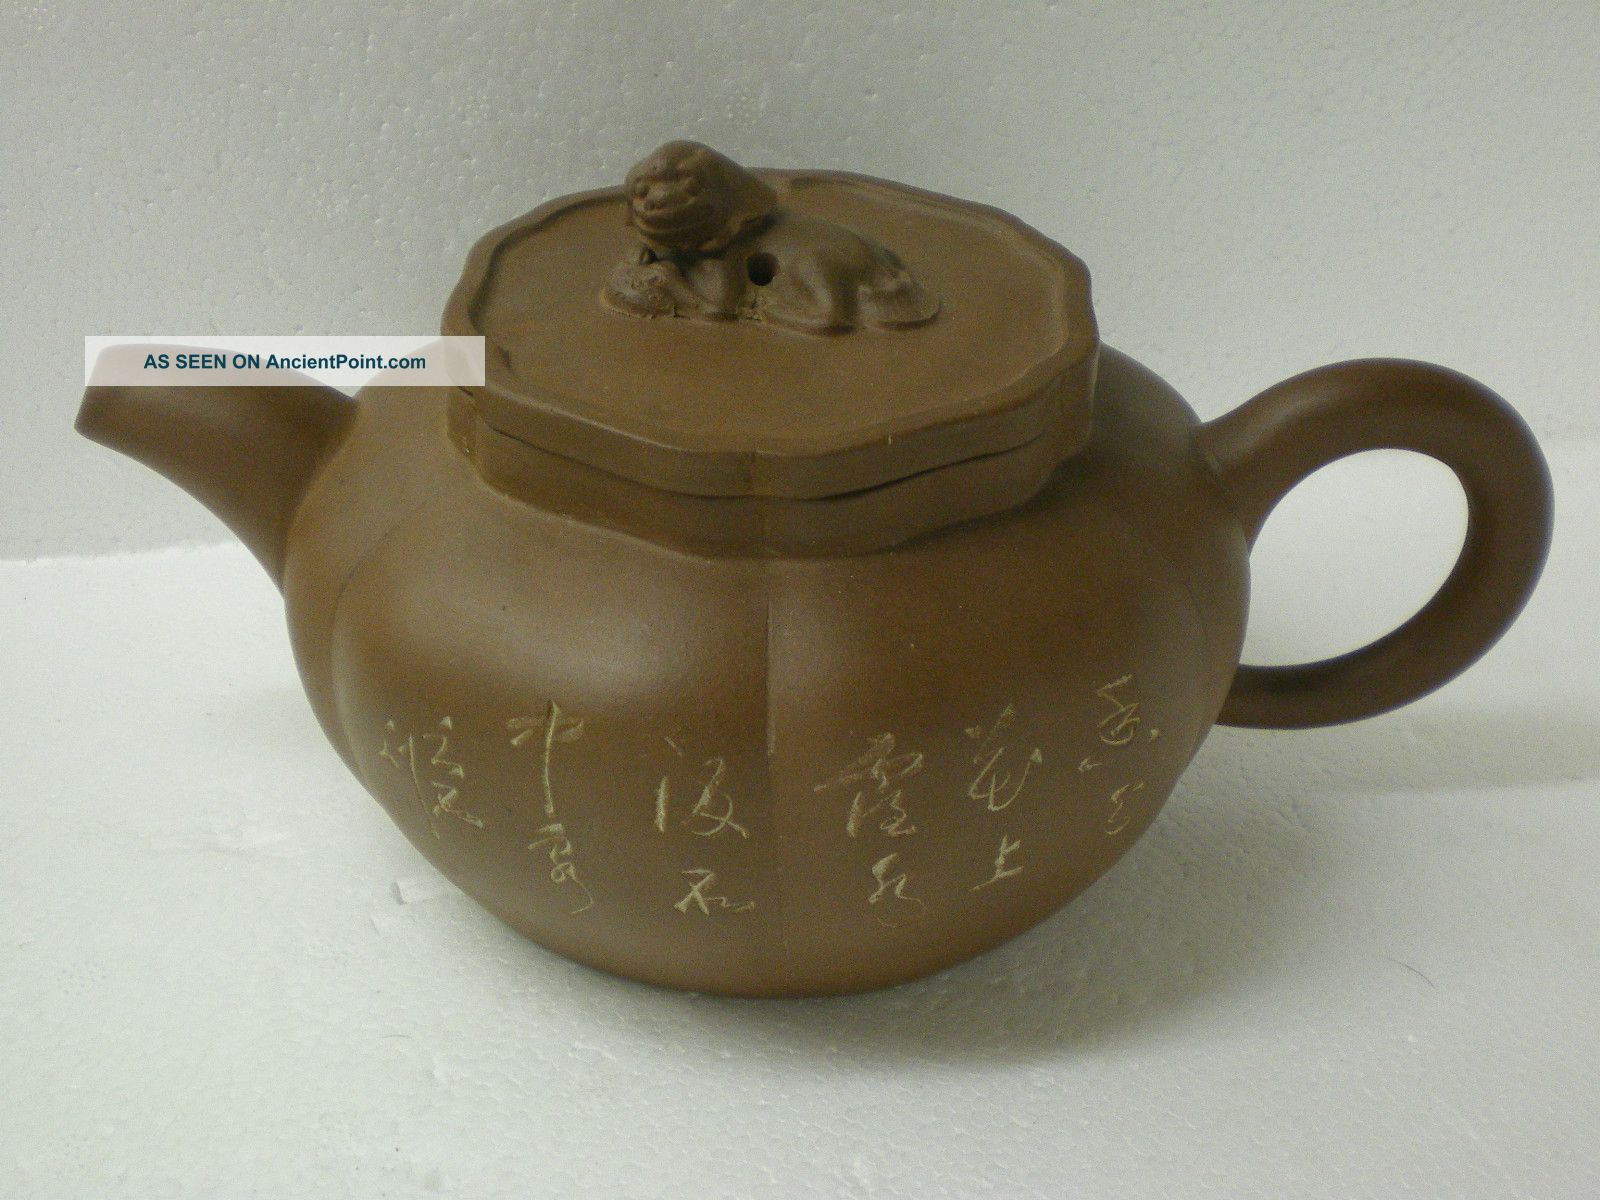 Antique Chinese Yixing Clay Teapot With Lion On Cover Teapots photo